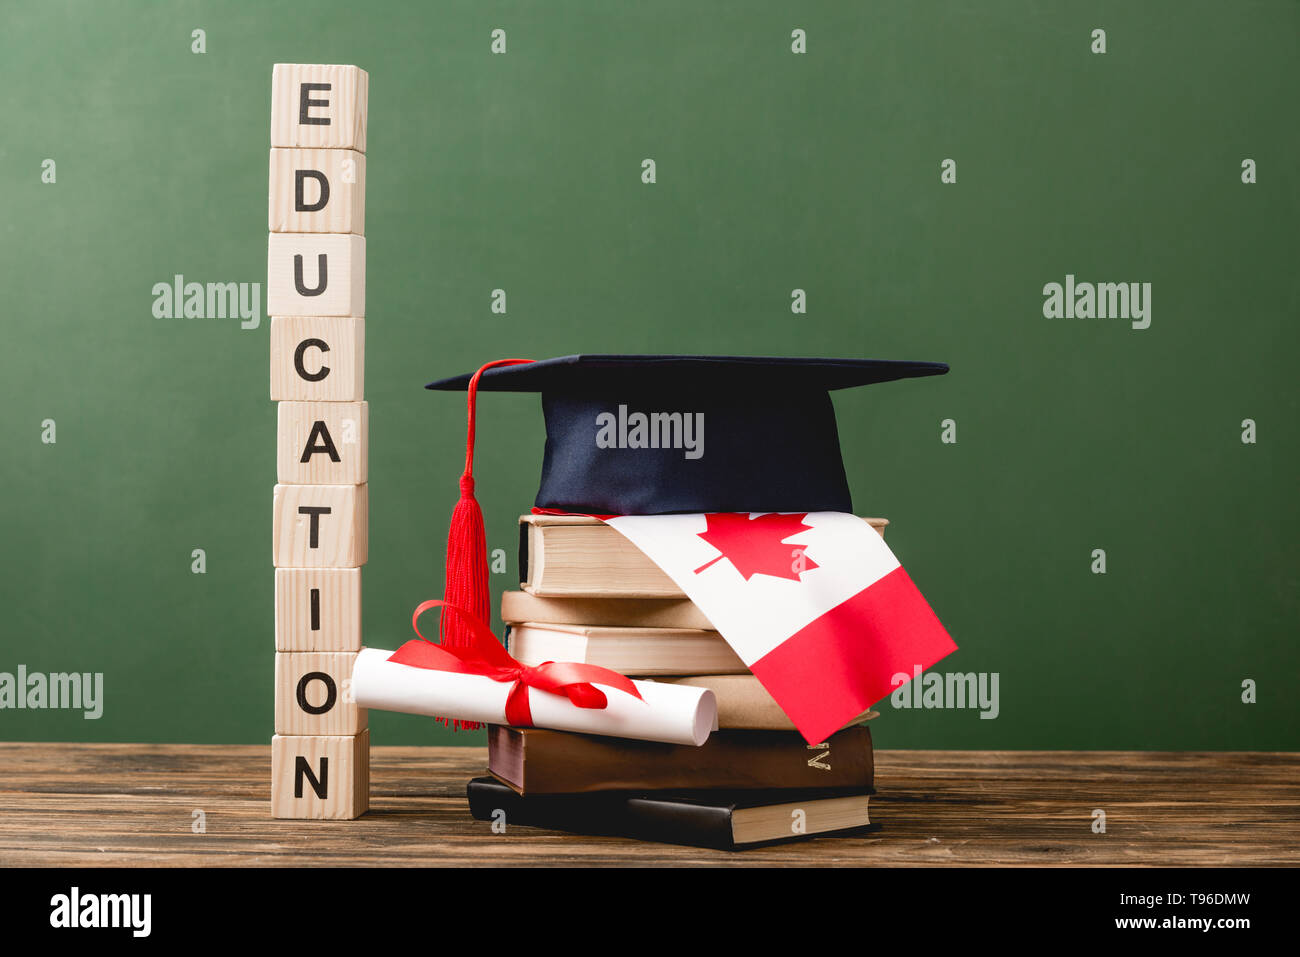 wooden blocks with letters, diploma, books, academic cap and canadian flag on wooden surface isolated on green - Stock Image